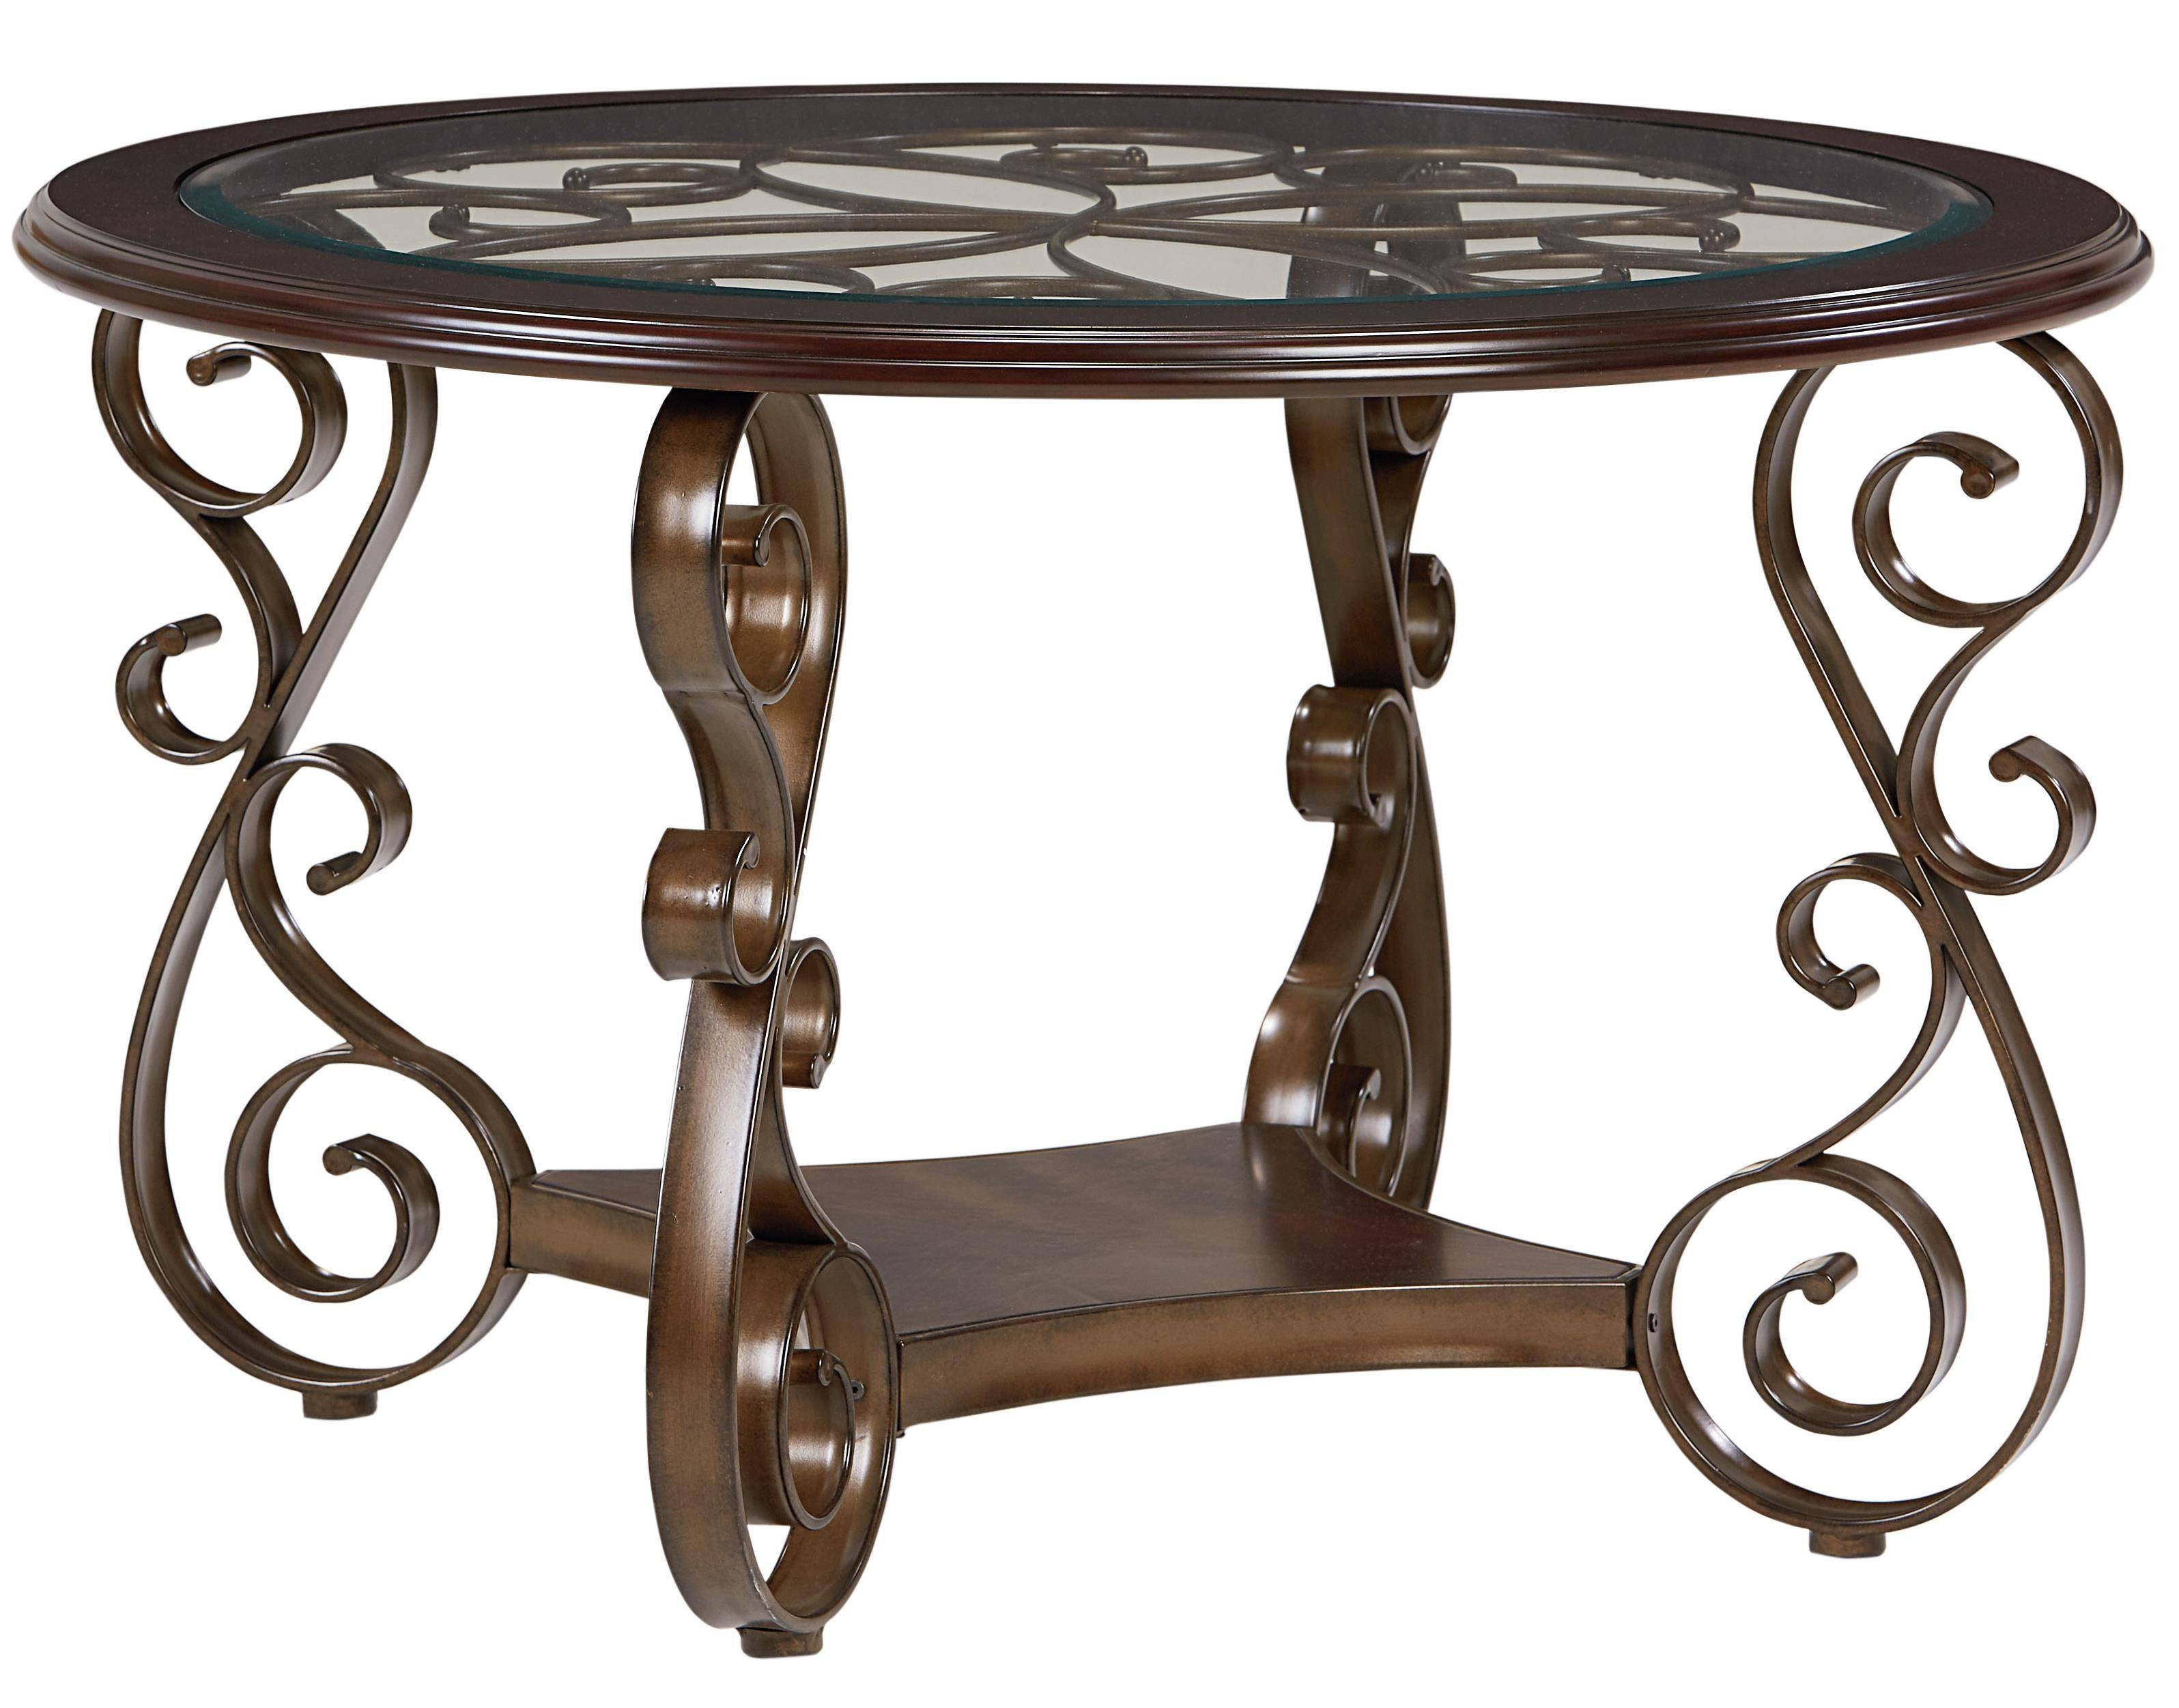 Standard Furniture Bombay Round Dining Table With Metal Scroll within Bombay Coffee Tables (Image 26 of 30)